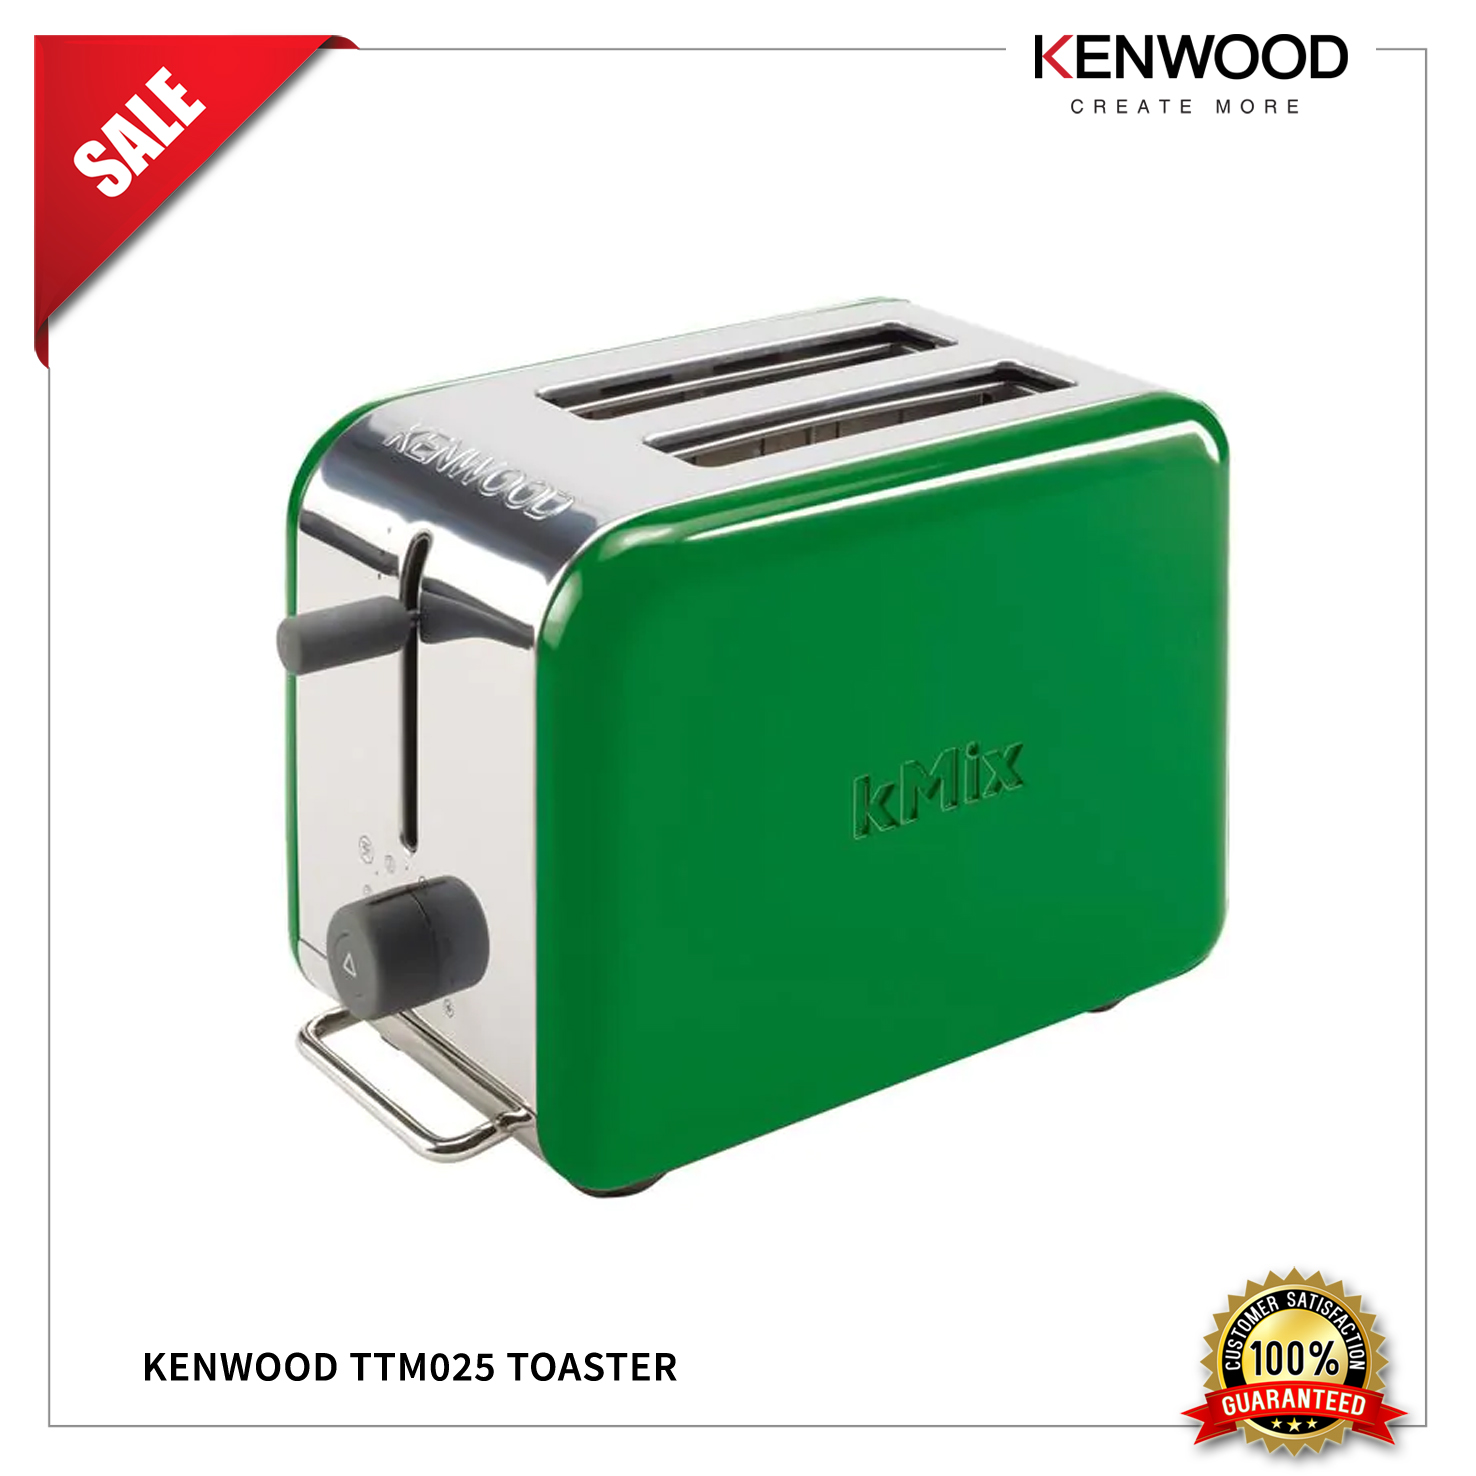 KENWOOD_TTM025_TOASTER_GREEN – REVISI 2